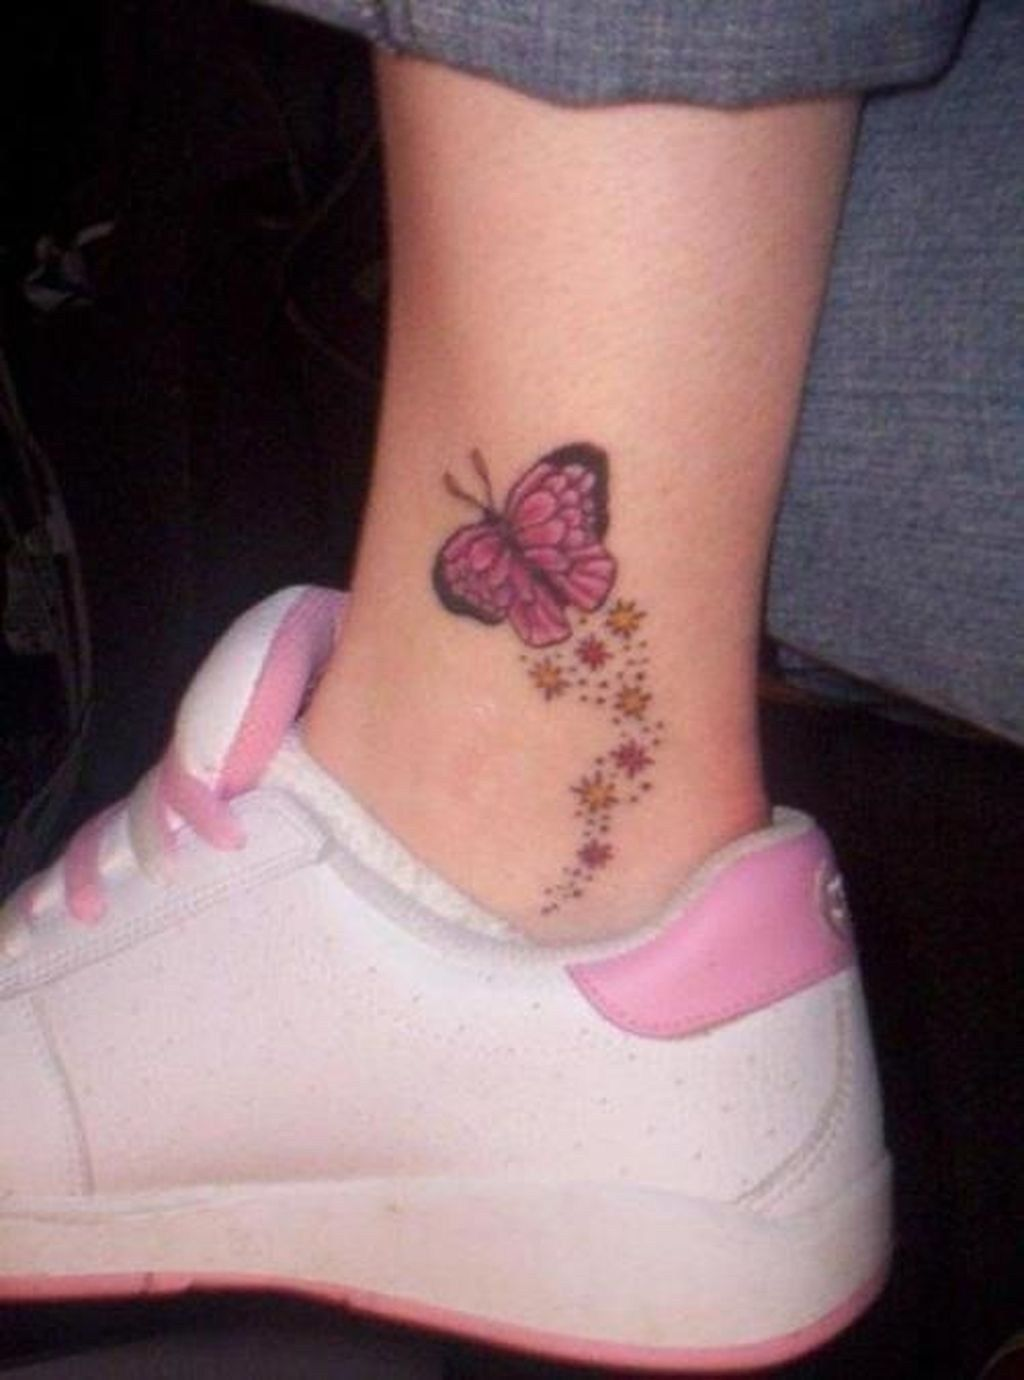 45 Lovely Foot Tattoo Ideas For Girls Foot Tattoos Foot Tattoo Ankle Tattoo